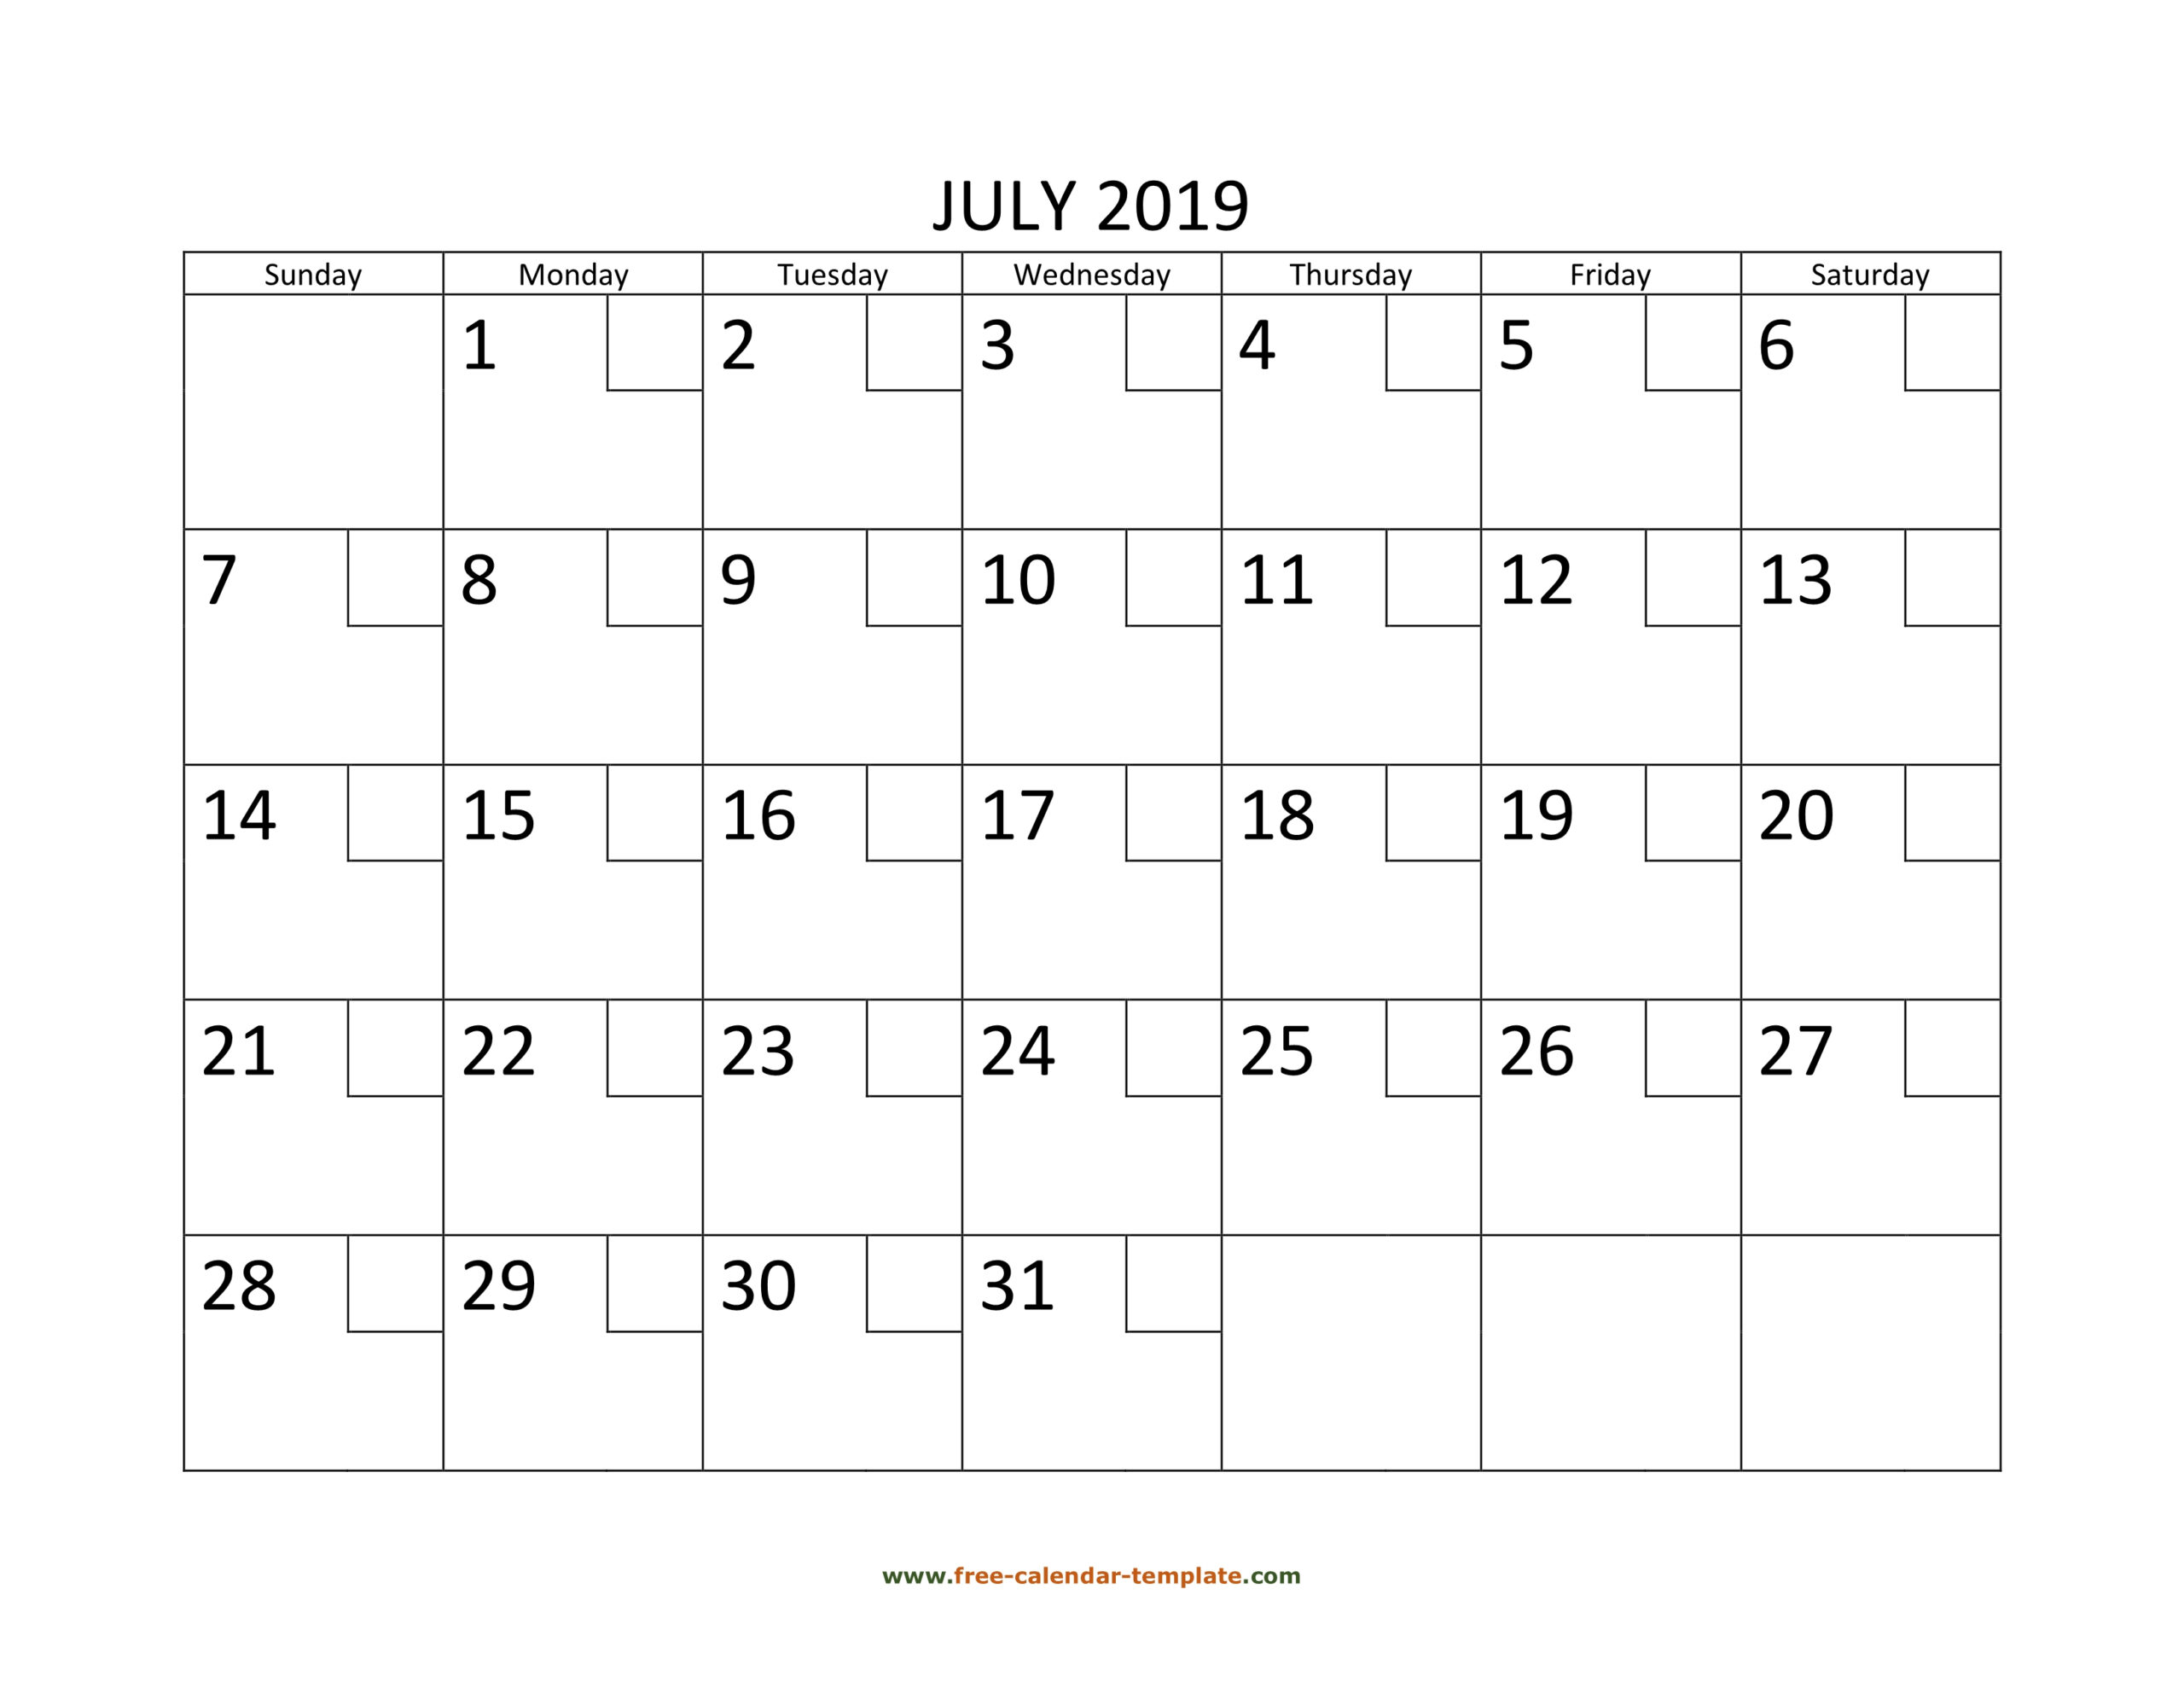 July Calendar 2019 Printable With Checkboxes (Horizontal